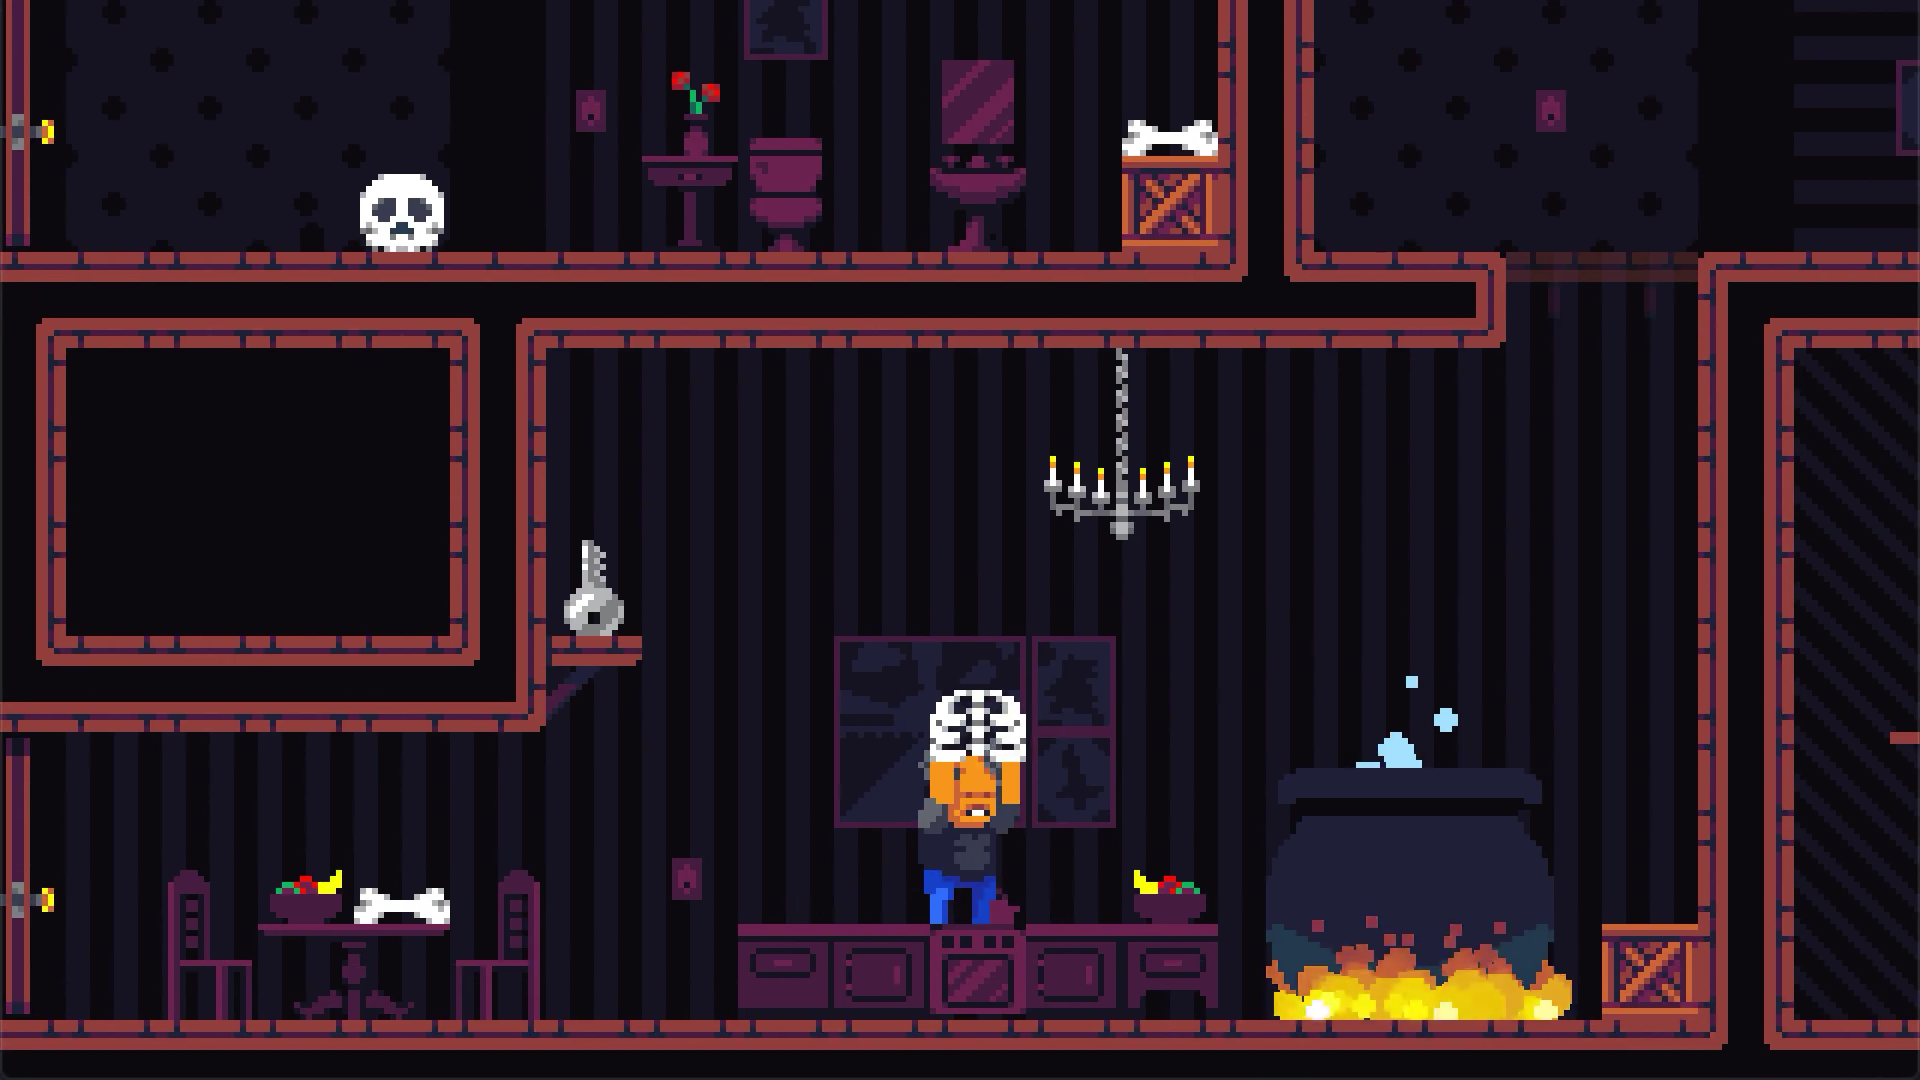 A screenshot of Midnight Manor with the main character holding a ribcage in a kitchen.